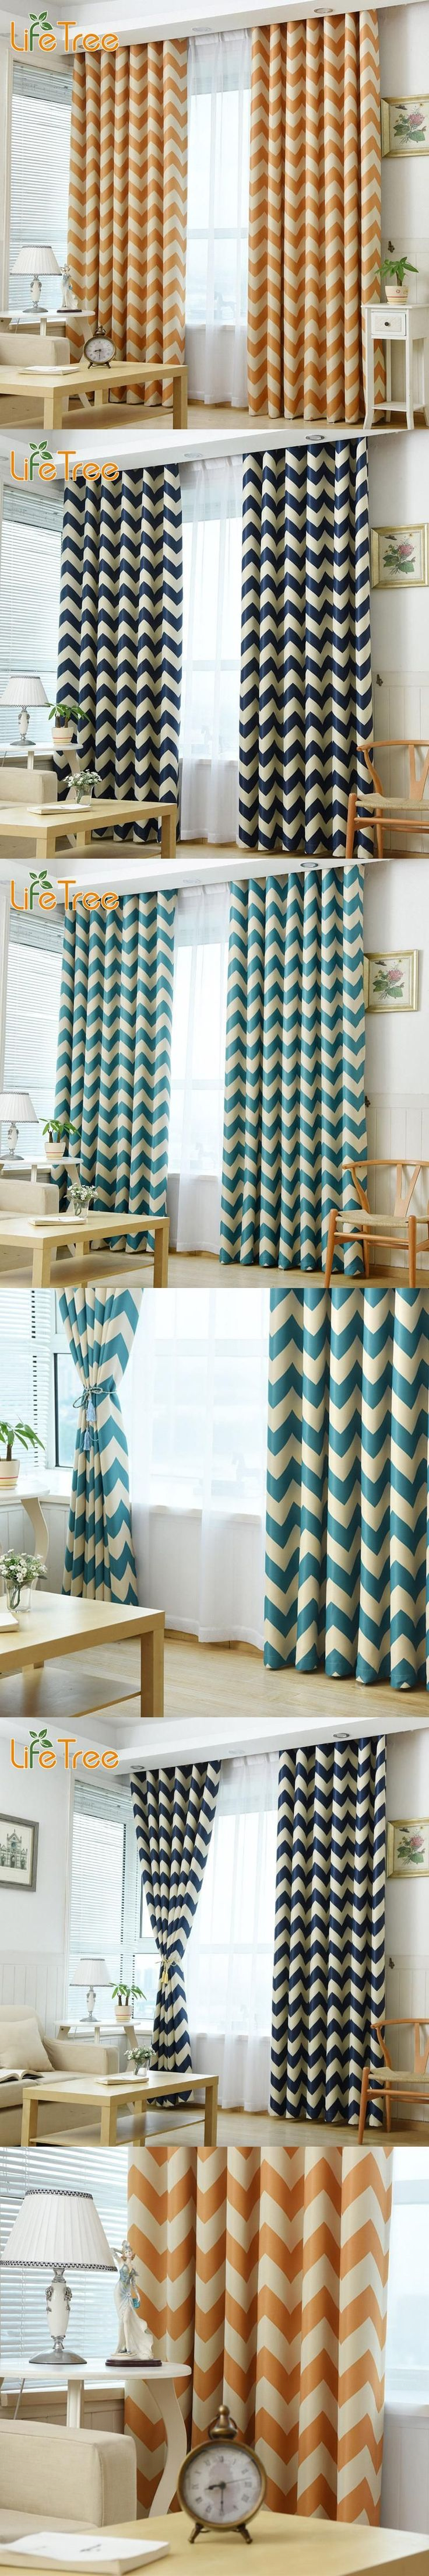 Waves Printed Modern Blackout Curtains For Living Room Mediterranean Blue Navy Yellow Bedroom Window Drapes Custom Made